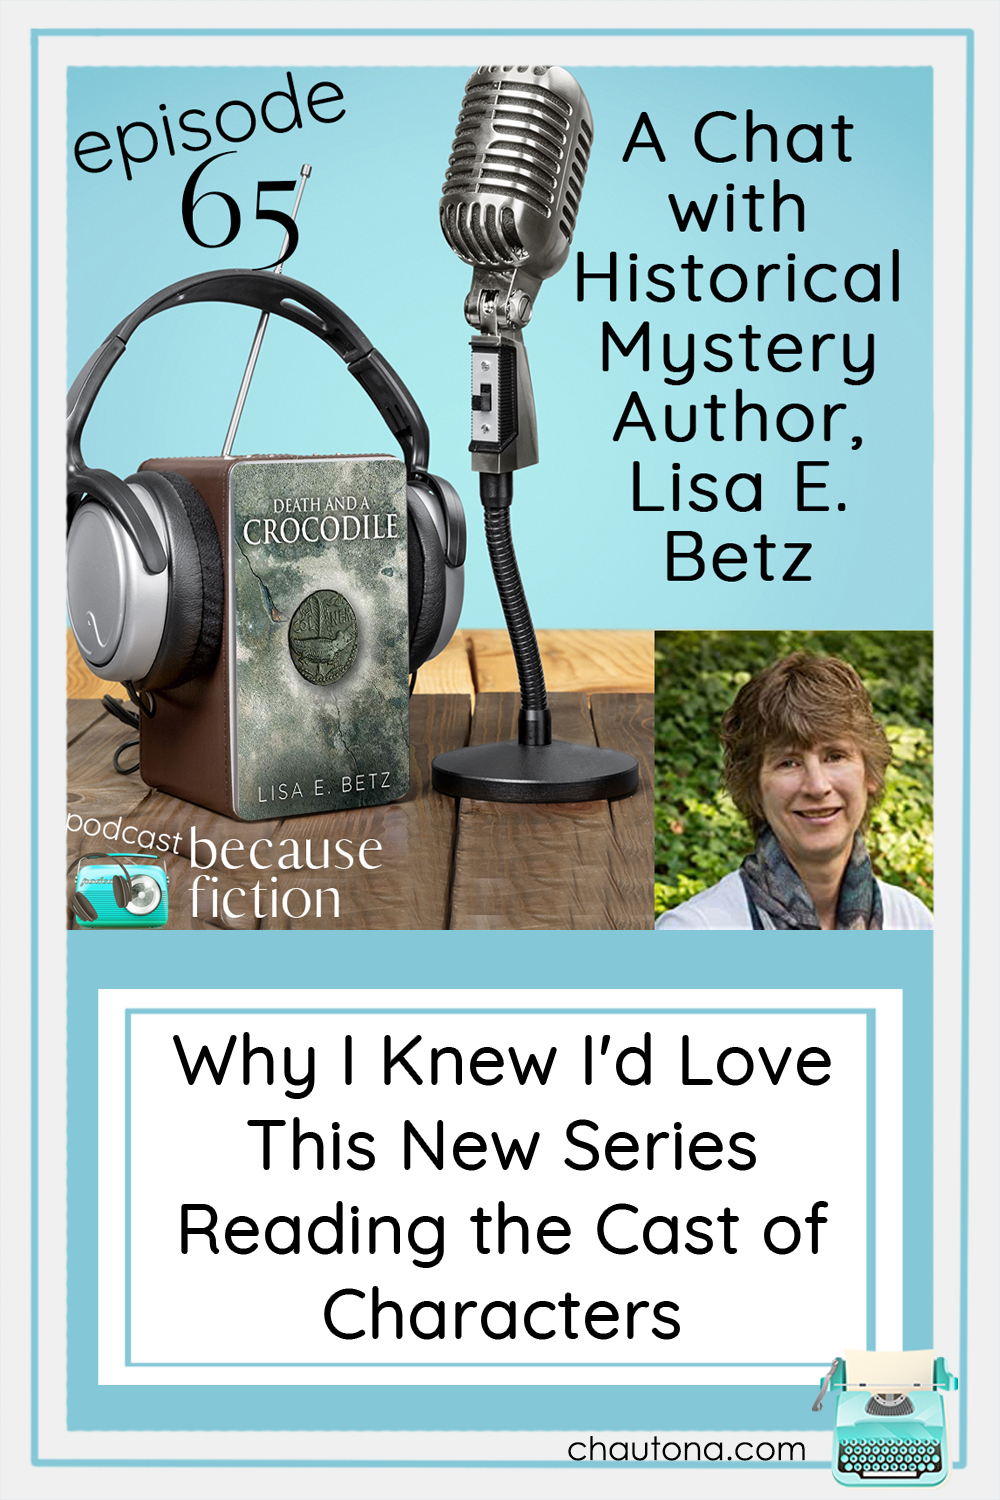 Lisa E. Betz wrote a fabulous first-century mystery including a hilarious cat of characters & a sausage-stealing cat. What could be better? via @chautonahavig